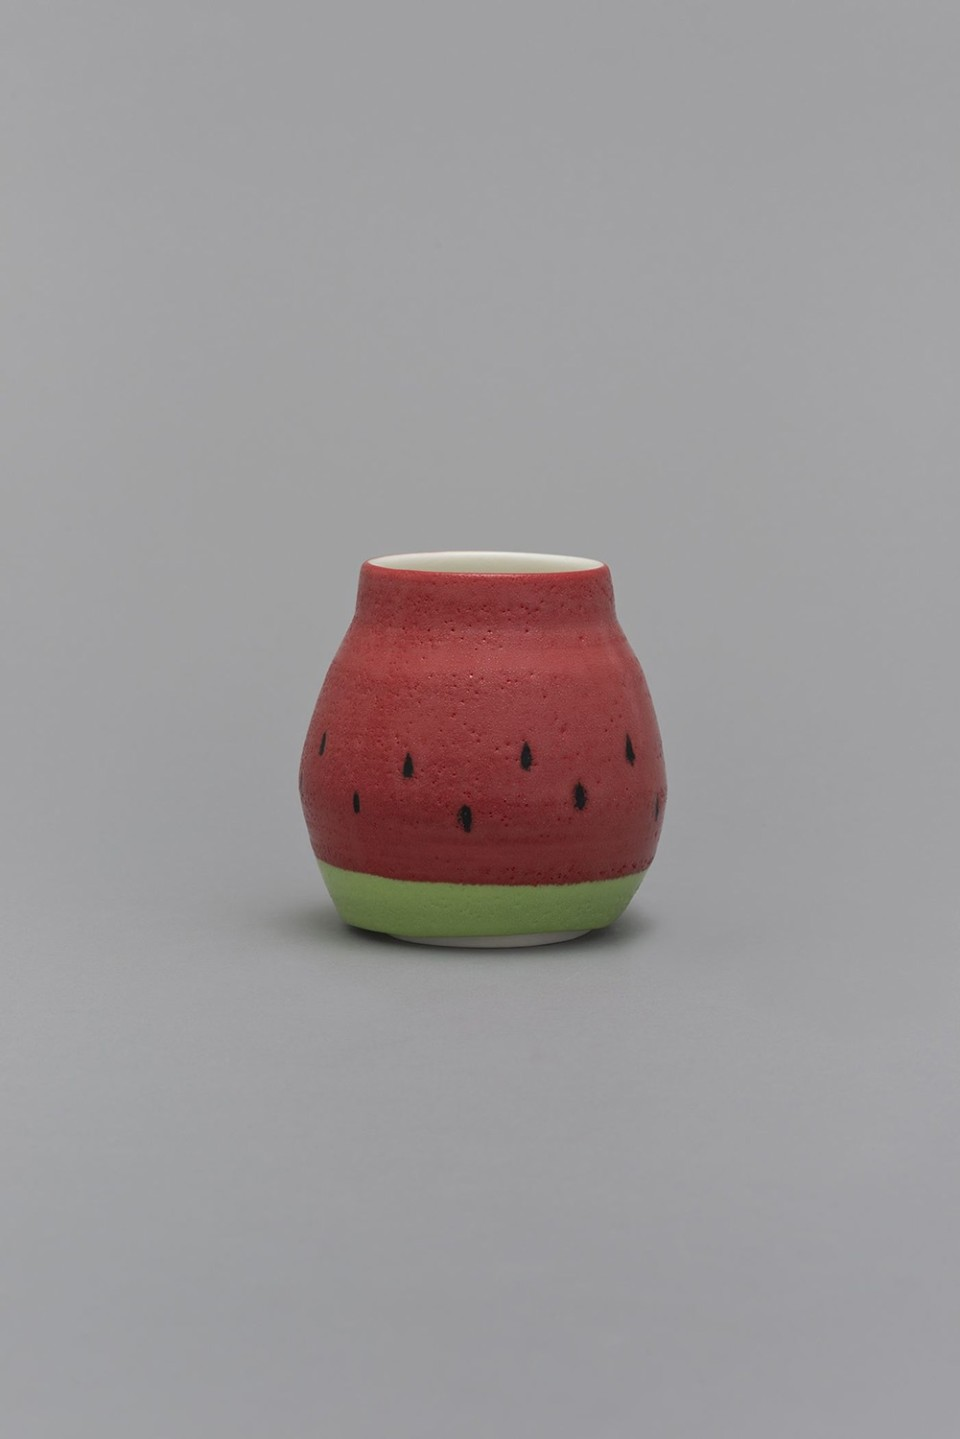 Image: Shio Kusaka  (watermelon 7), 2015  porcelain  5-1/4 x 5 x 5 inches